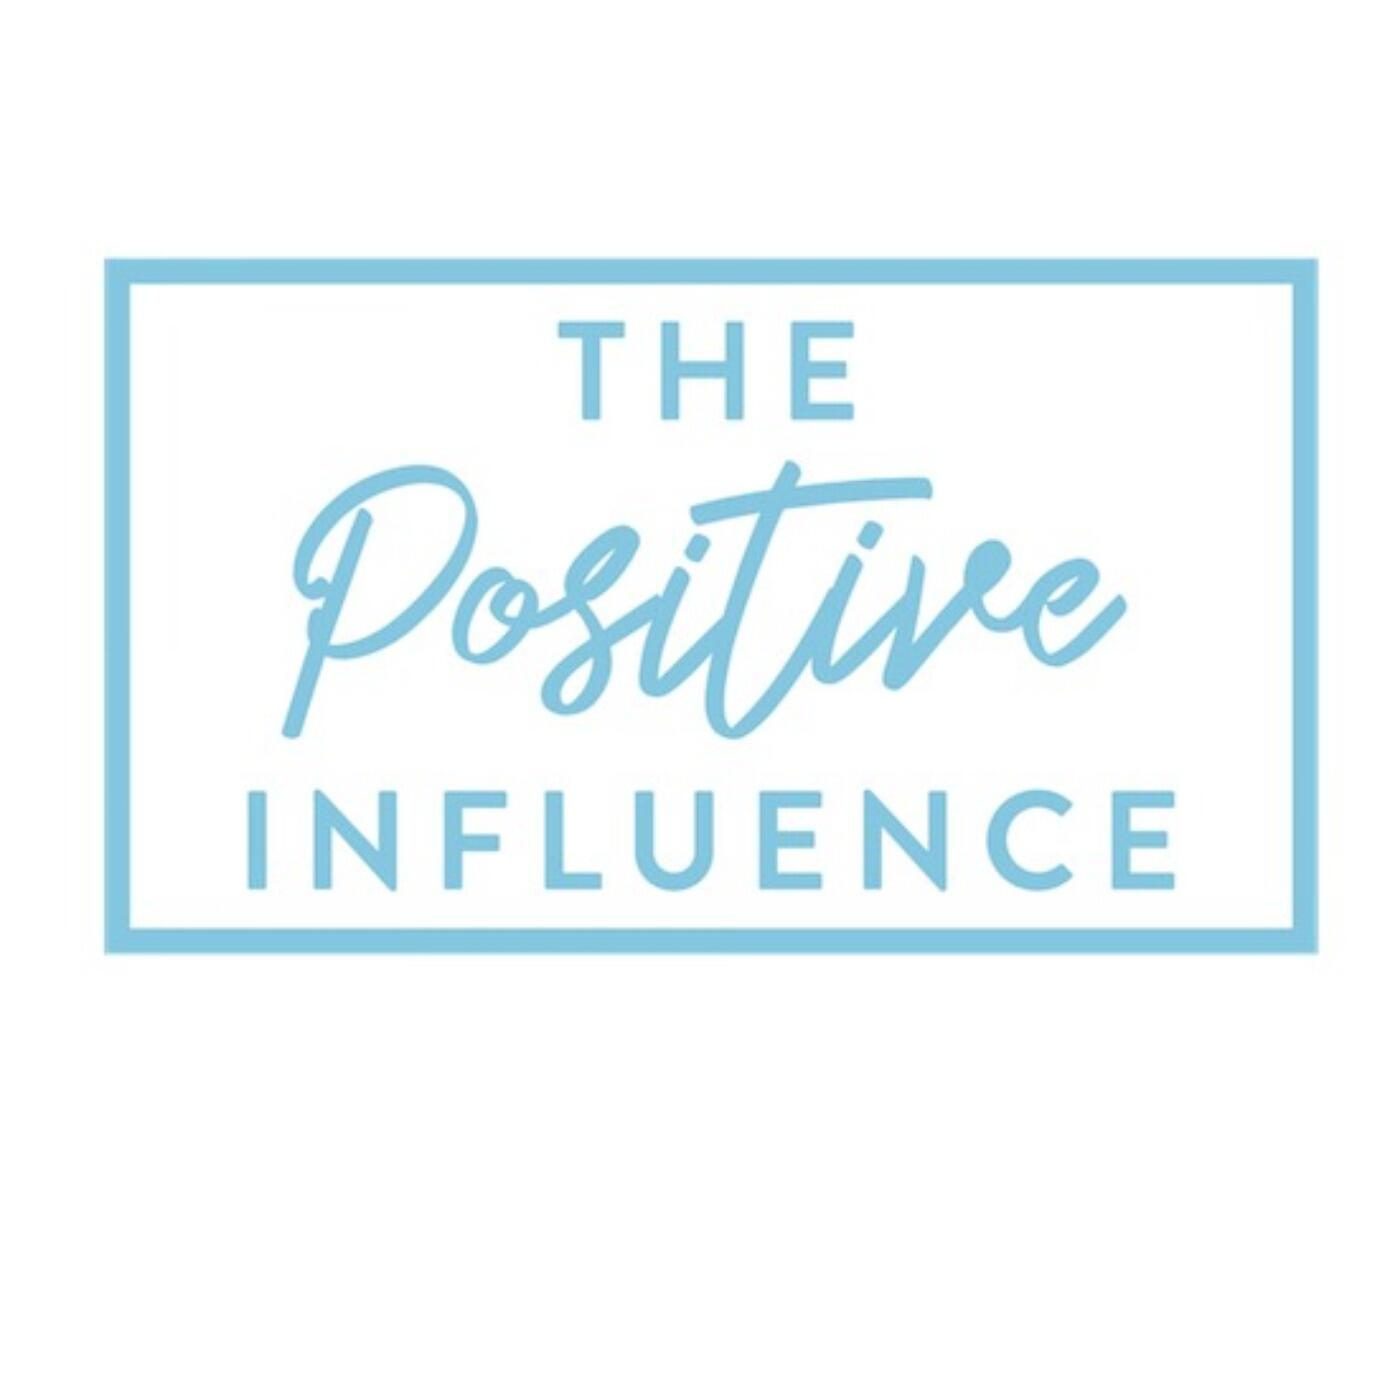 The Positive Influence